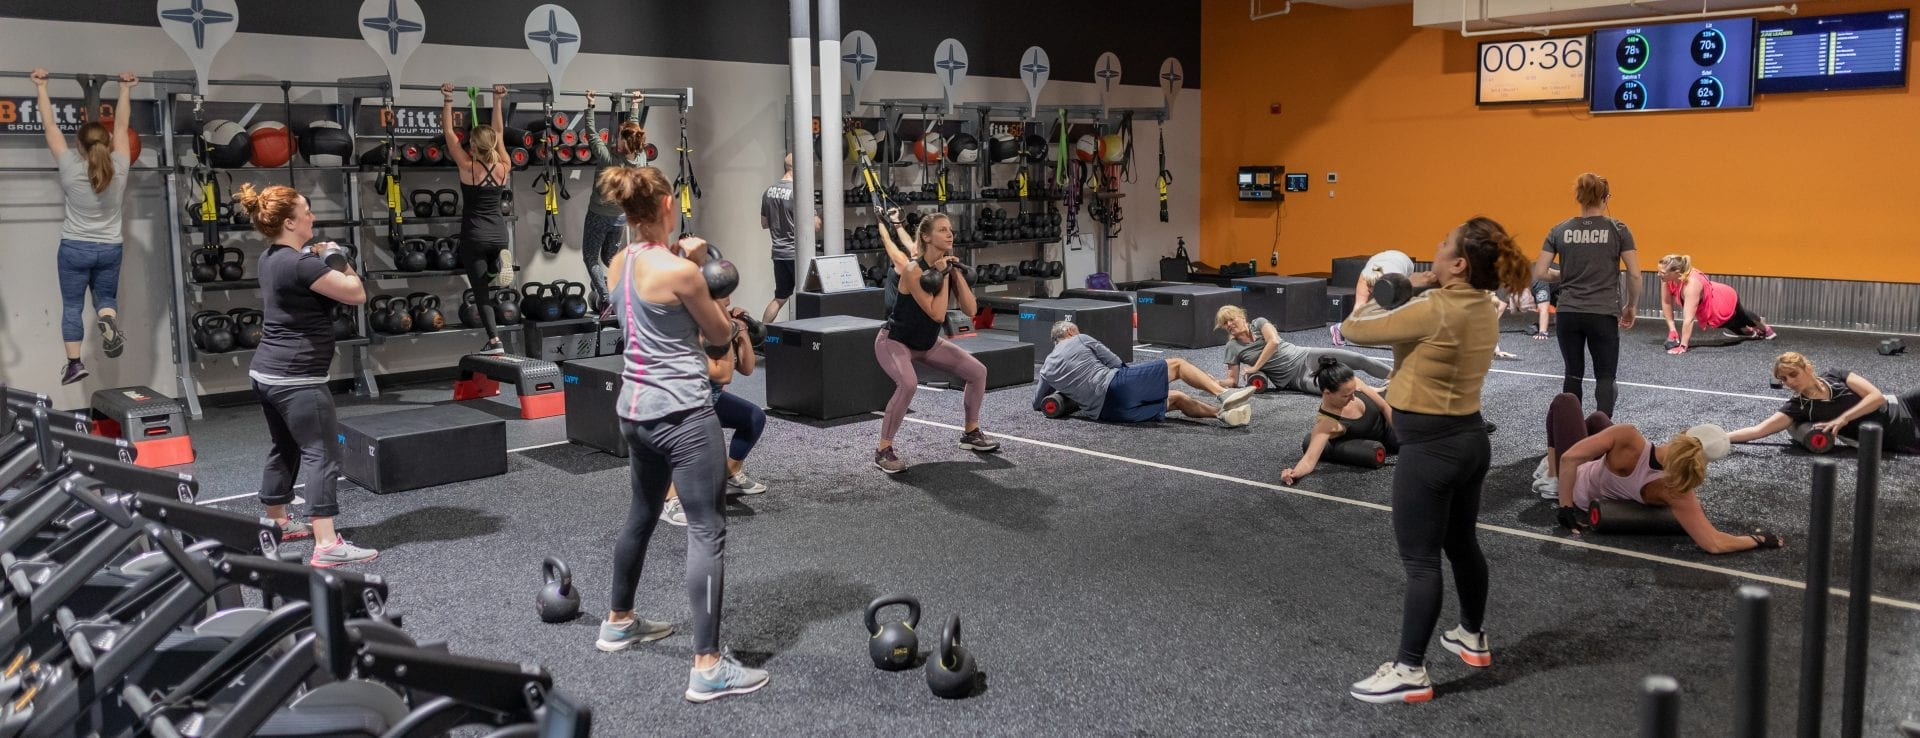 group training class in modern fitness center studio